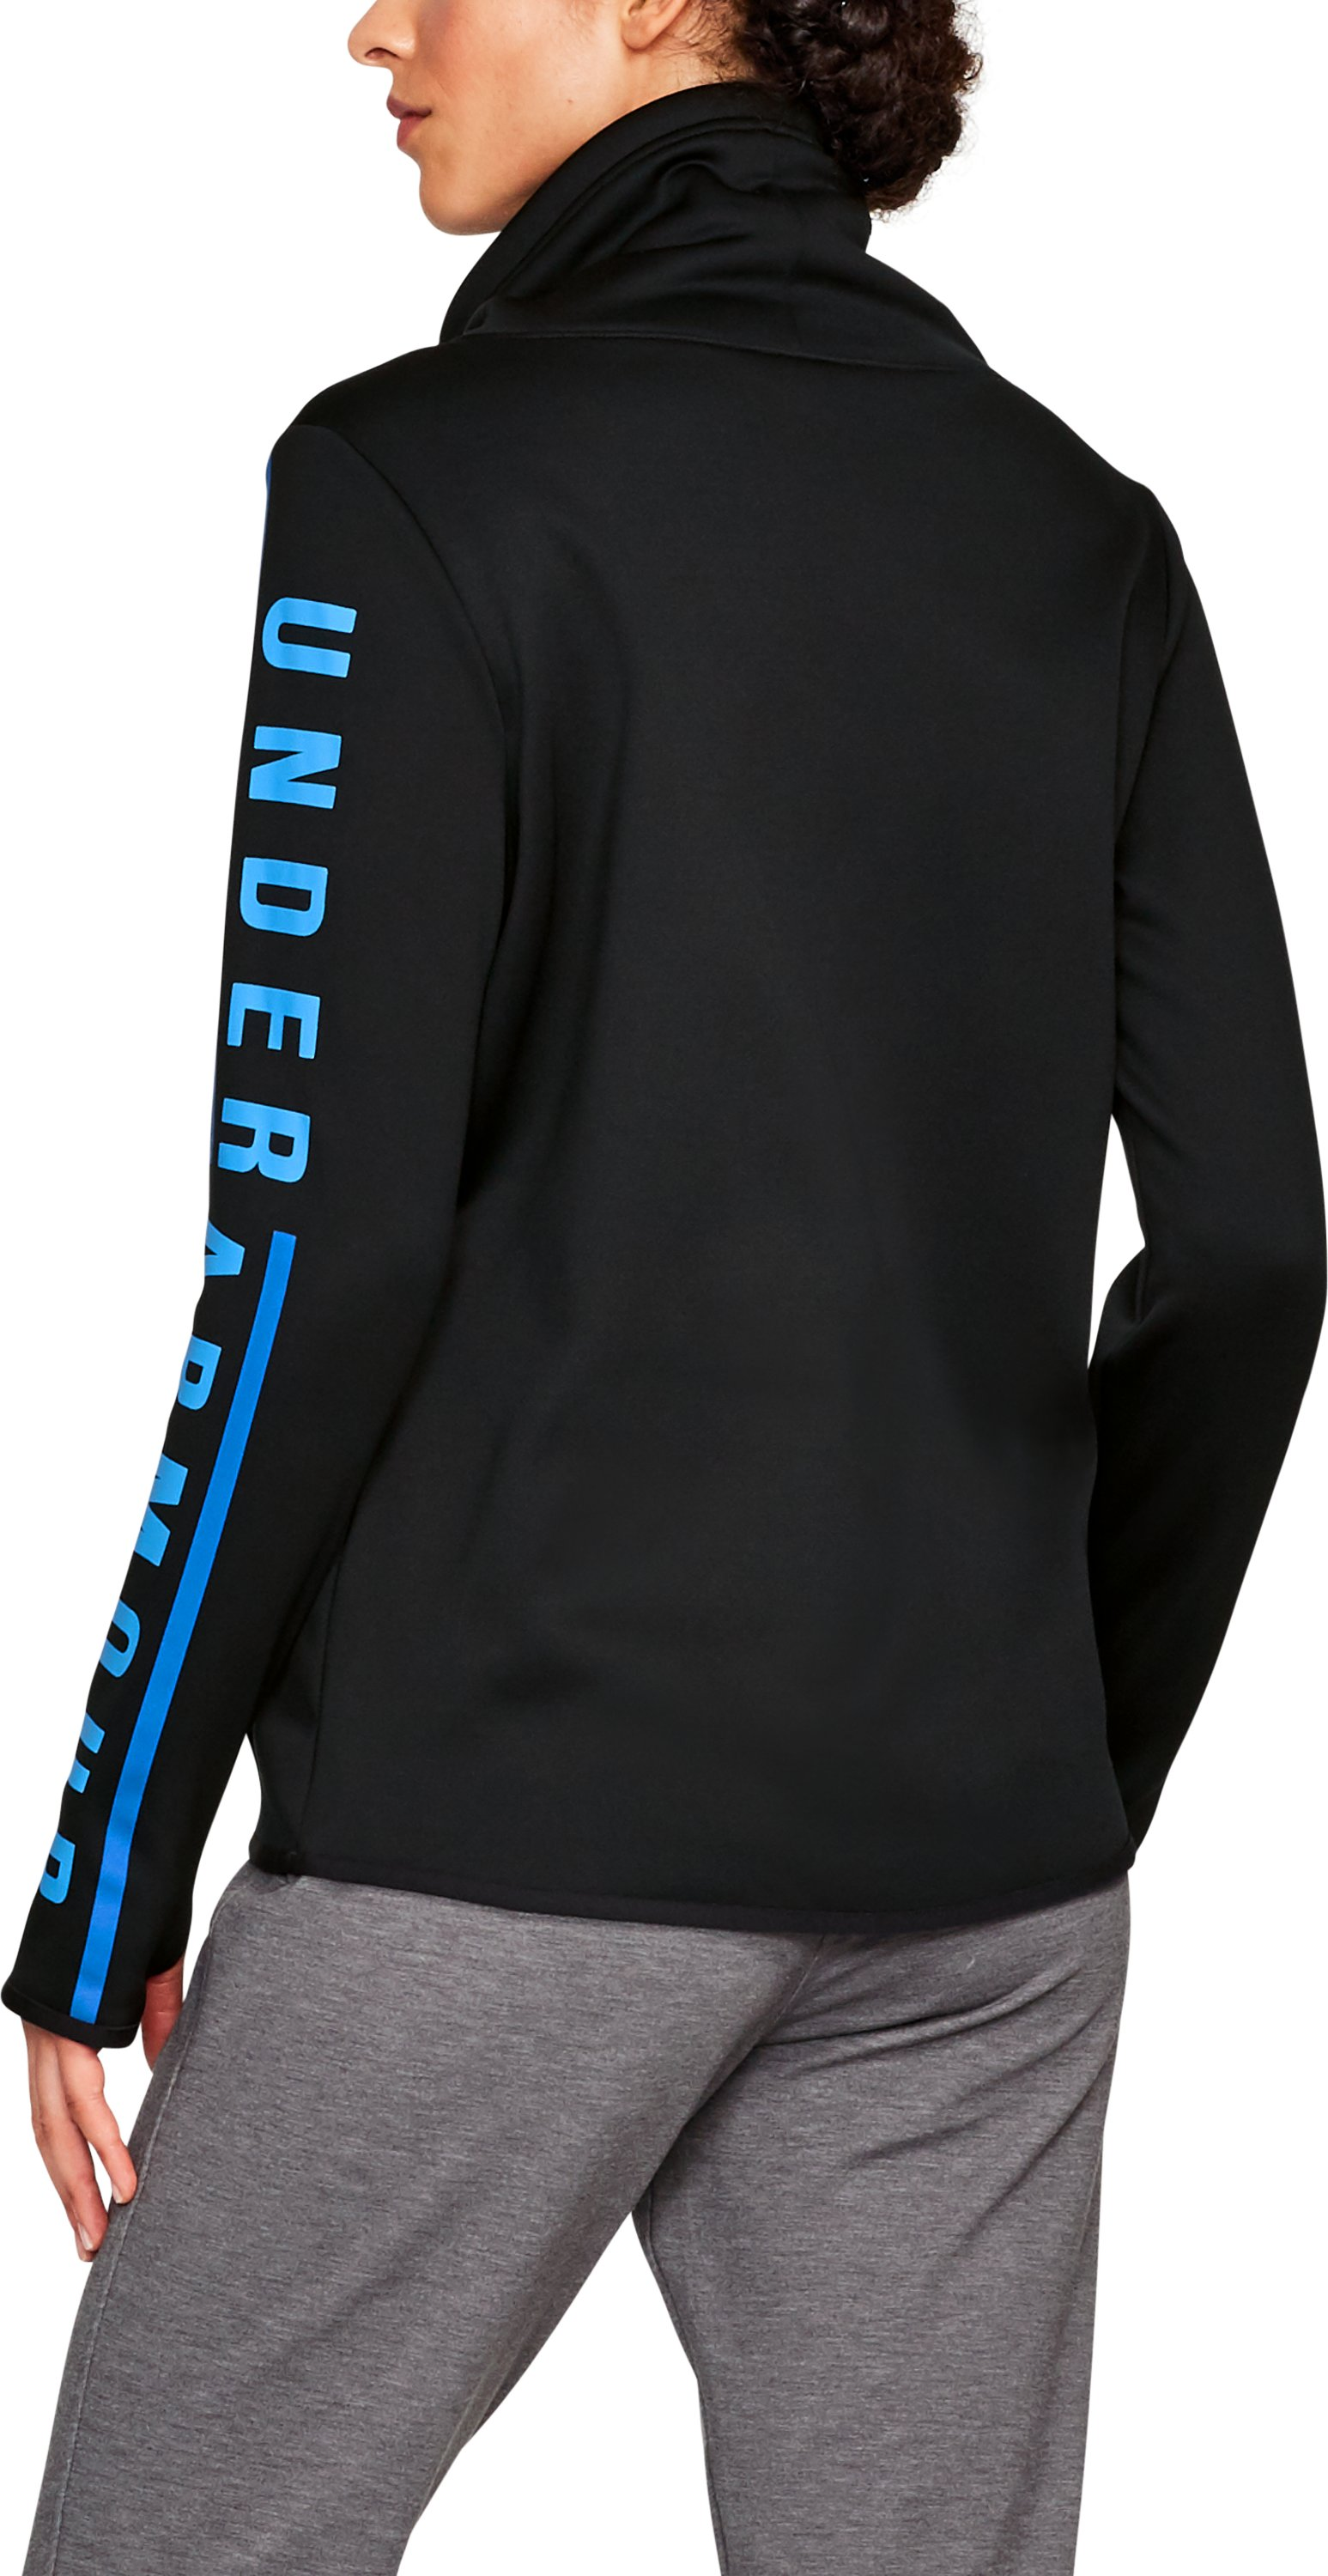 Armour® Fleece Graphic Pullover, Black